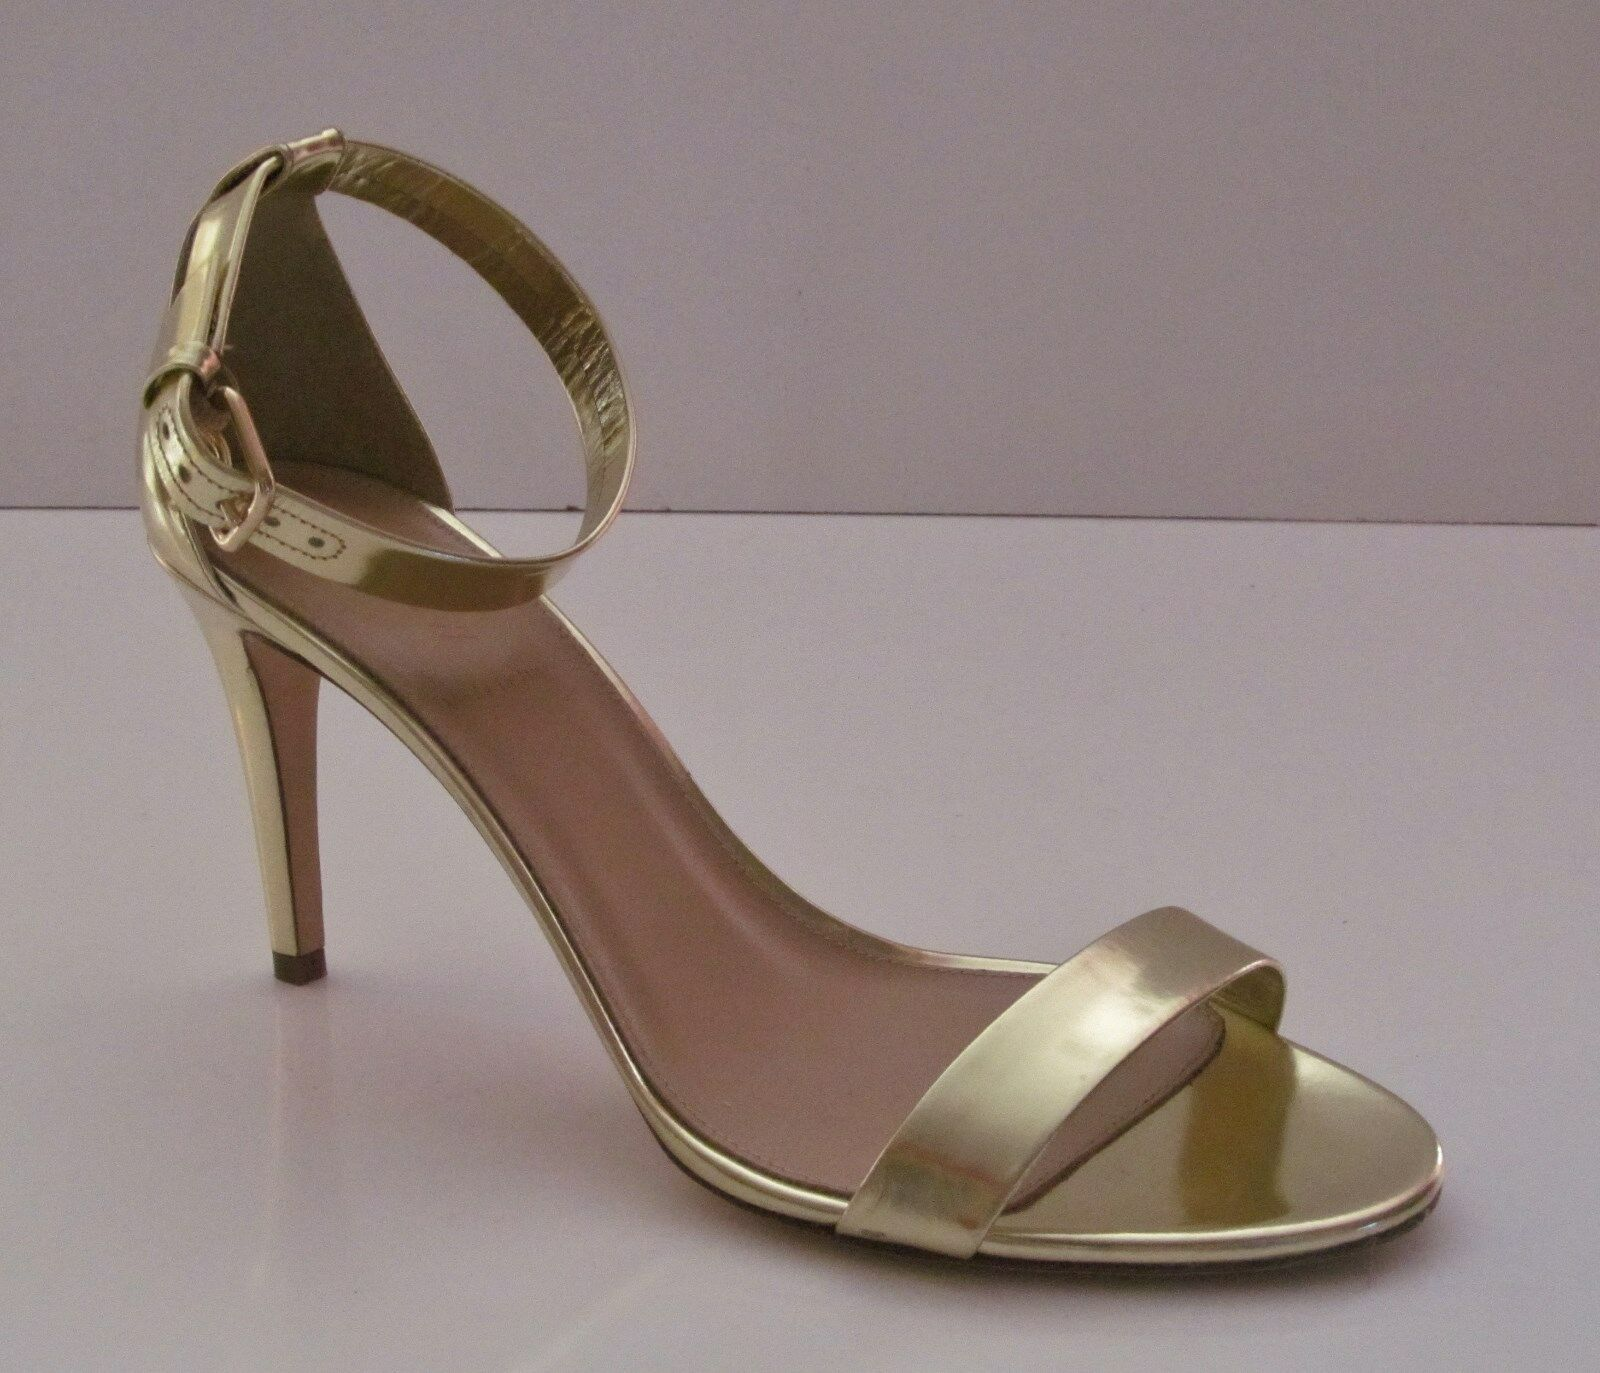 J Crew Mirror Metallic High Heel Sandale 7.5 Metallic Gold Pumps